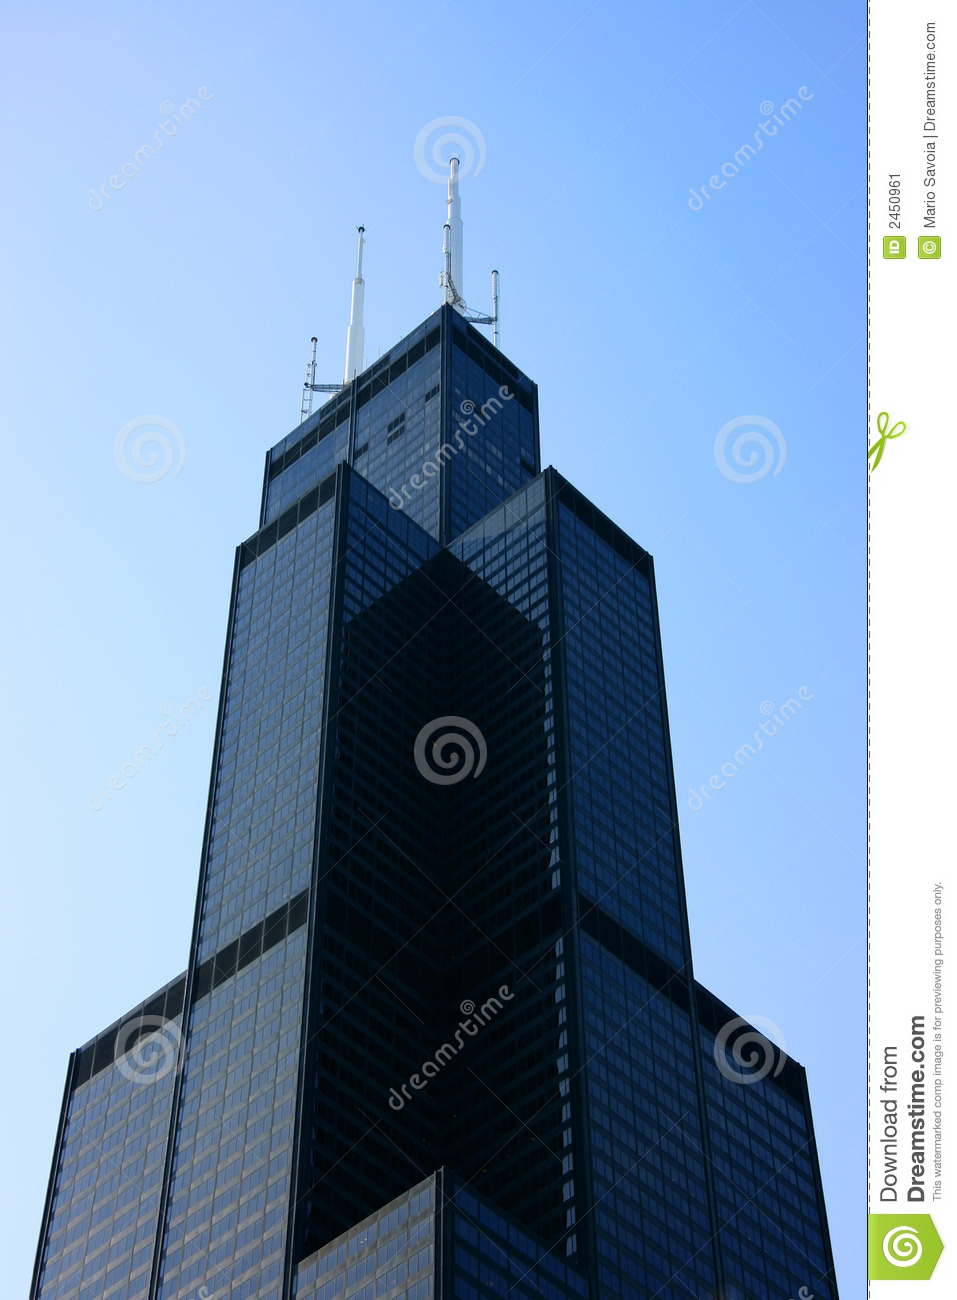 Sears Tower Top From Below Stock Image.